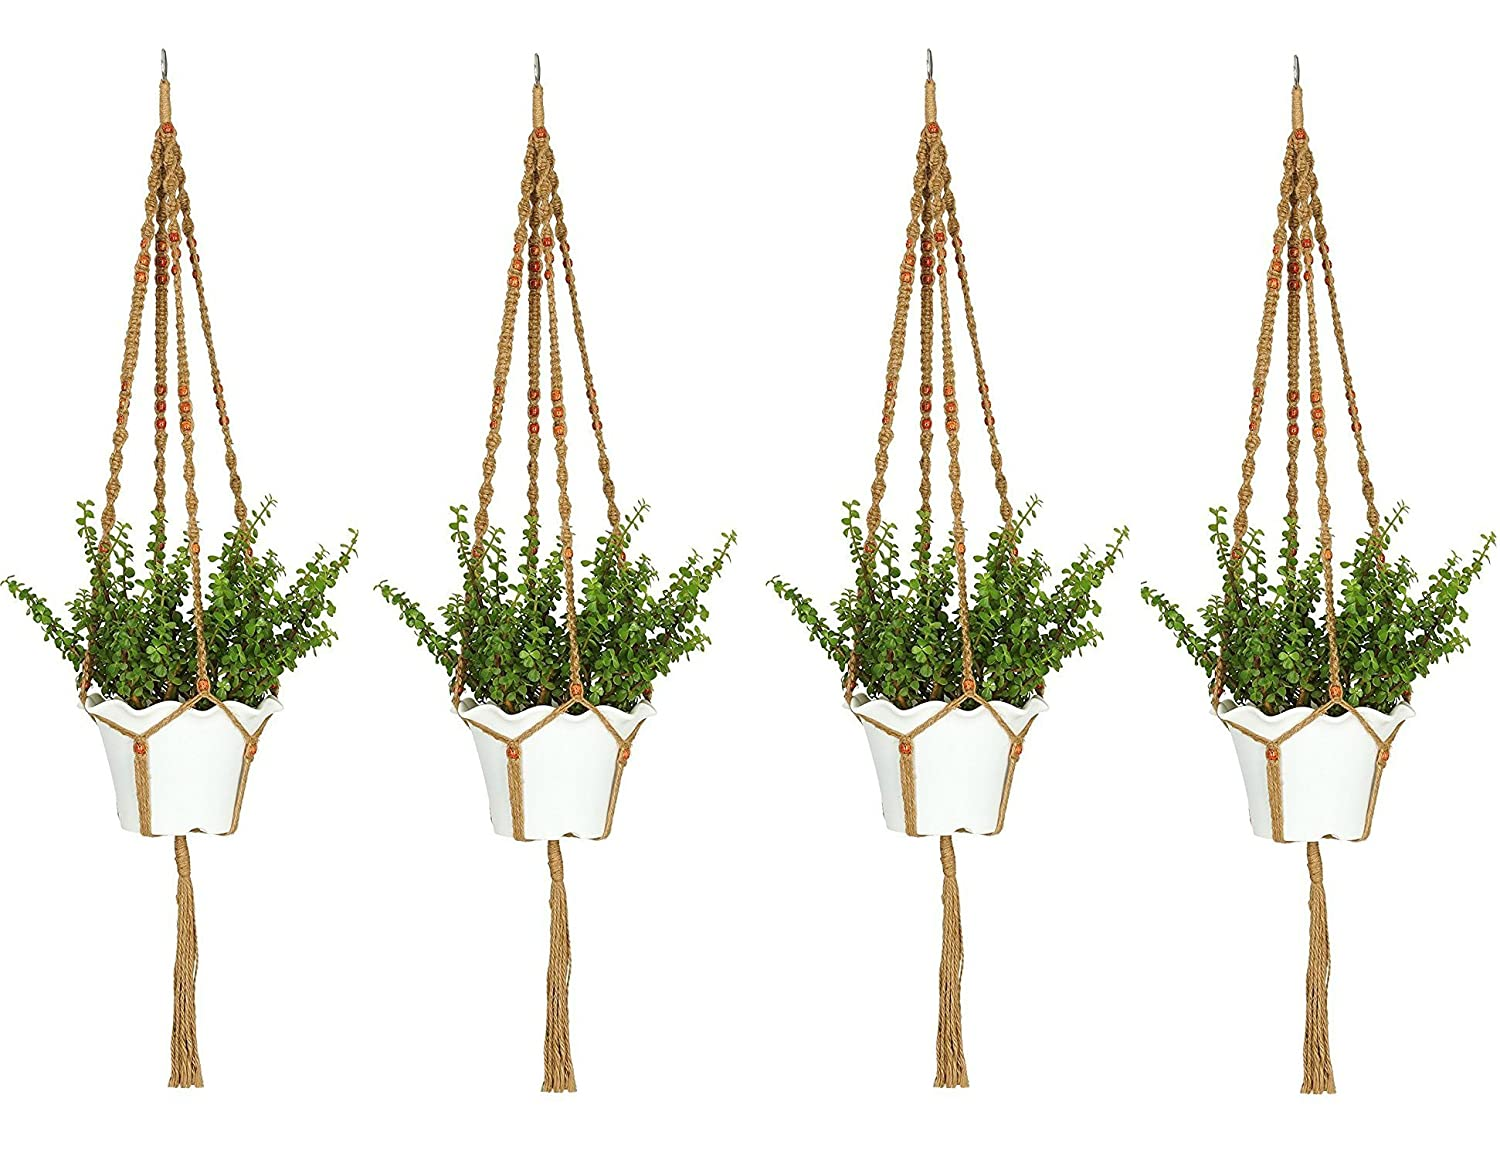 Ashman Macrame 4 Pack Jute Plant Hanger, Beautifully handmade Orange Beads 4 Leg Arms elegant look for use Indoors Outdoors Patio Balcony Deck Ceiling Round Square Containers and Hanging Baskets